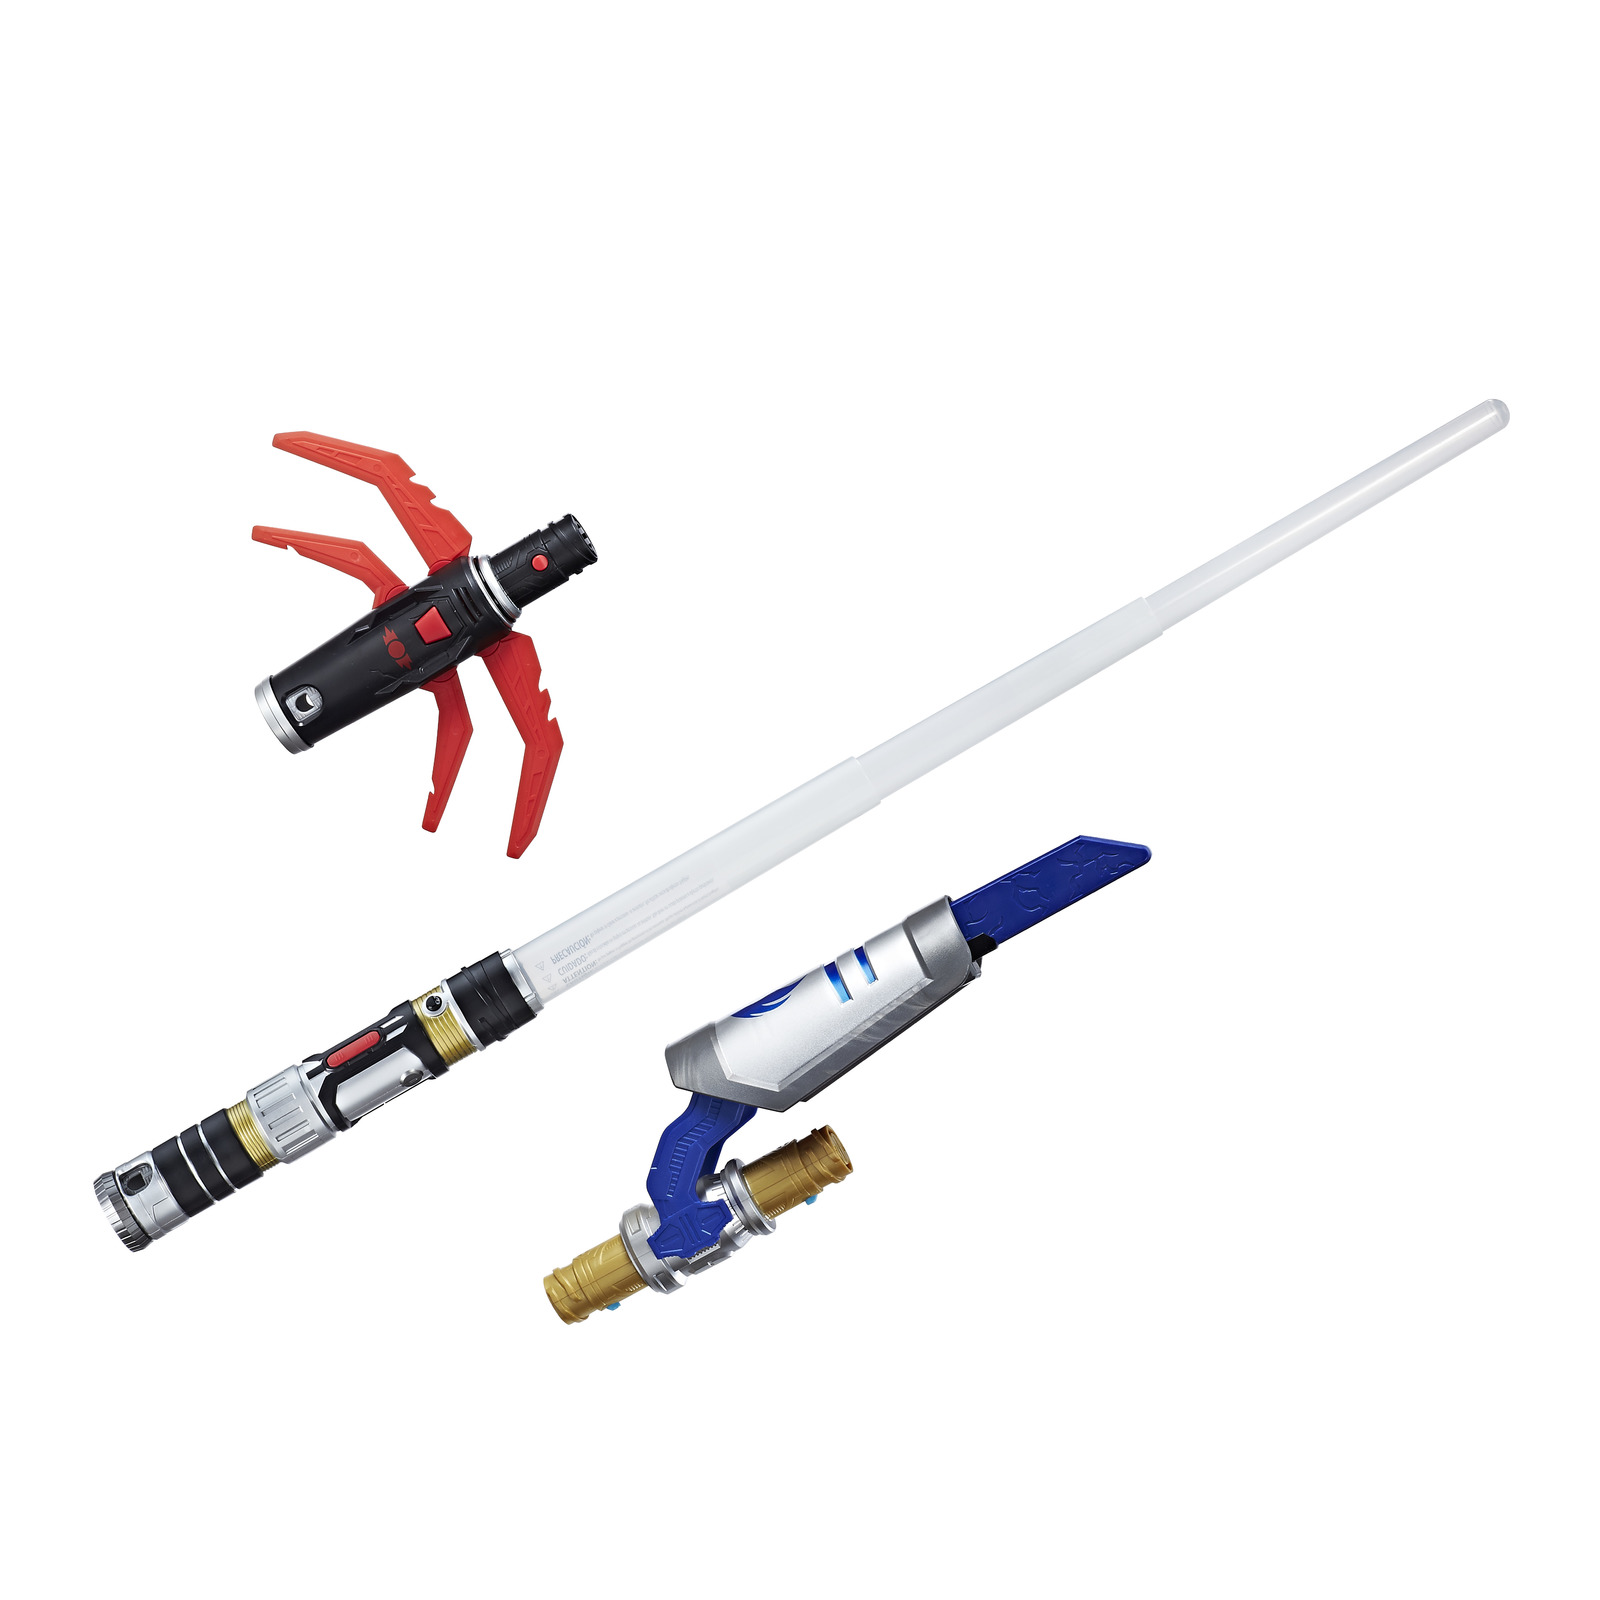 Star Wars: Bladebuilders - Path of the Force Lightsaber image